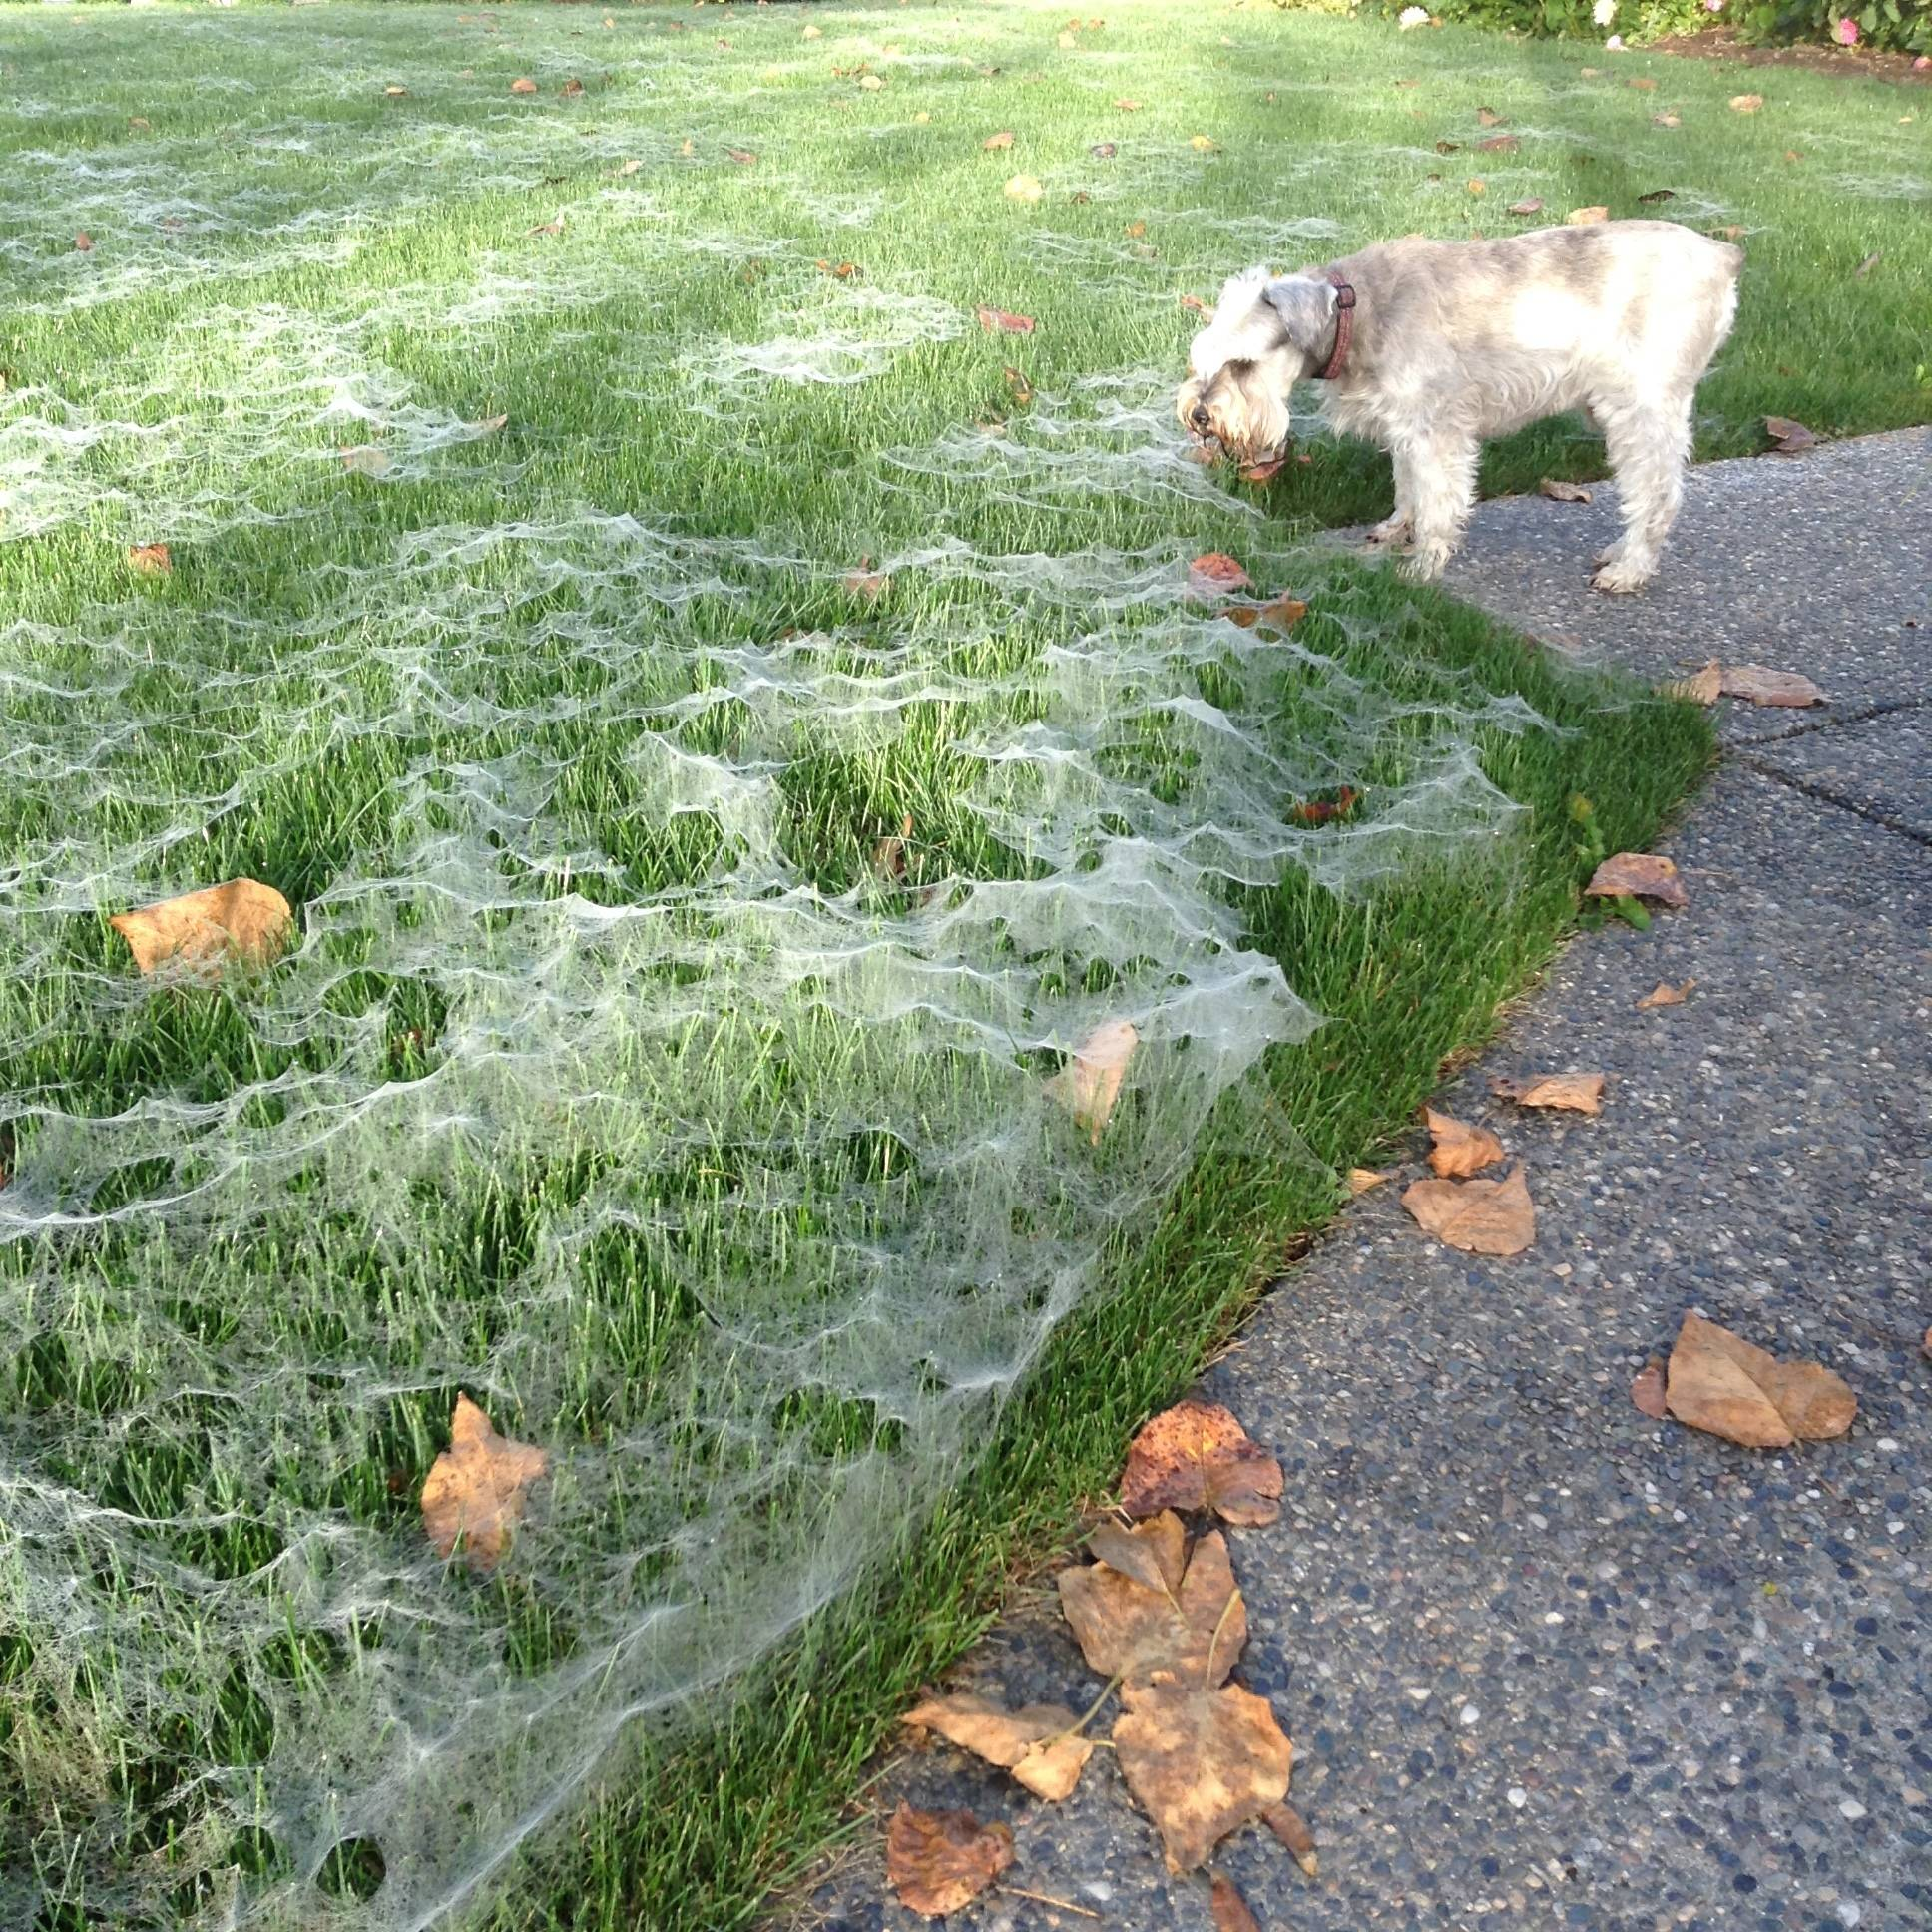 Birgit Kiilerich captures her dog Oscar curiously investigating her web-covered lawn at her home along the Fraser River off River Road. (Linda Kiilerich)